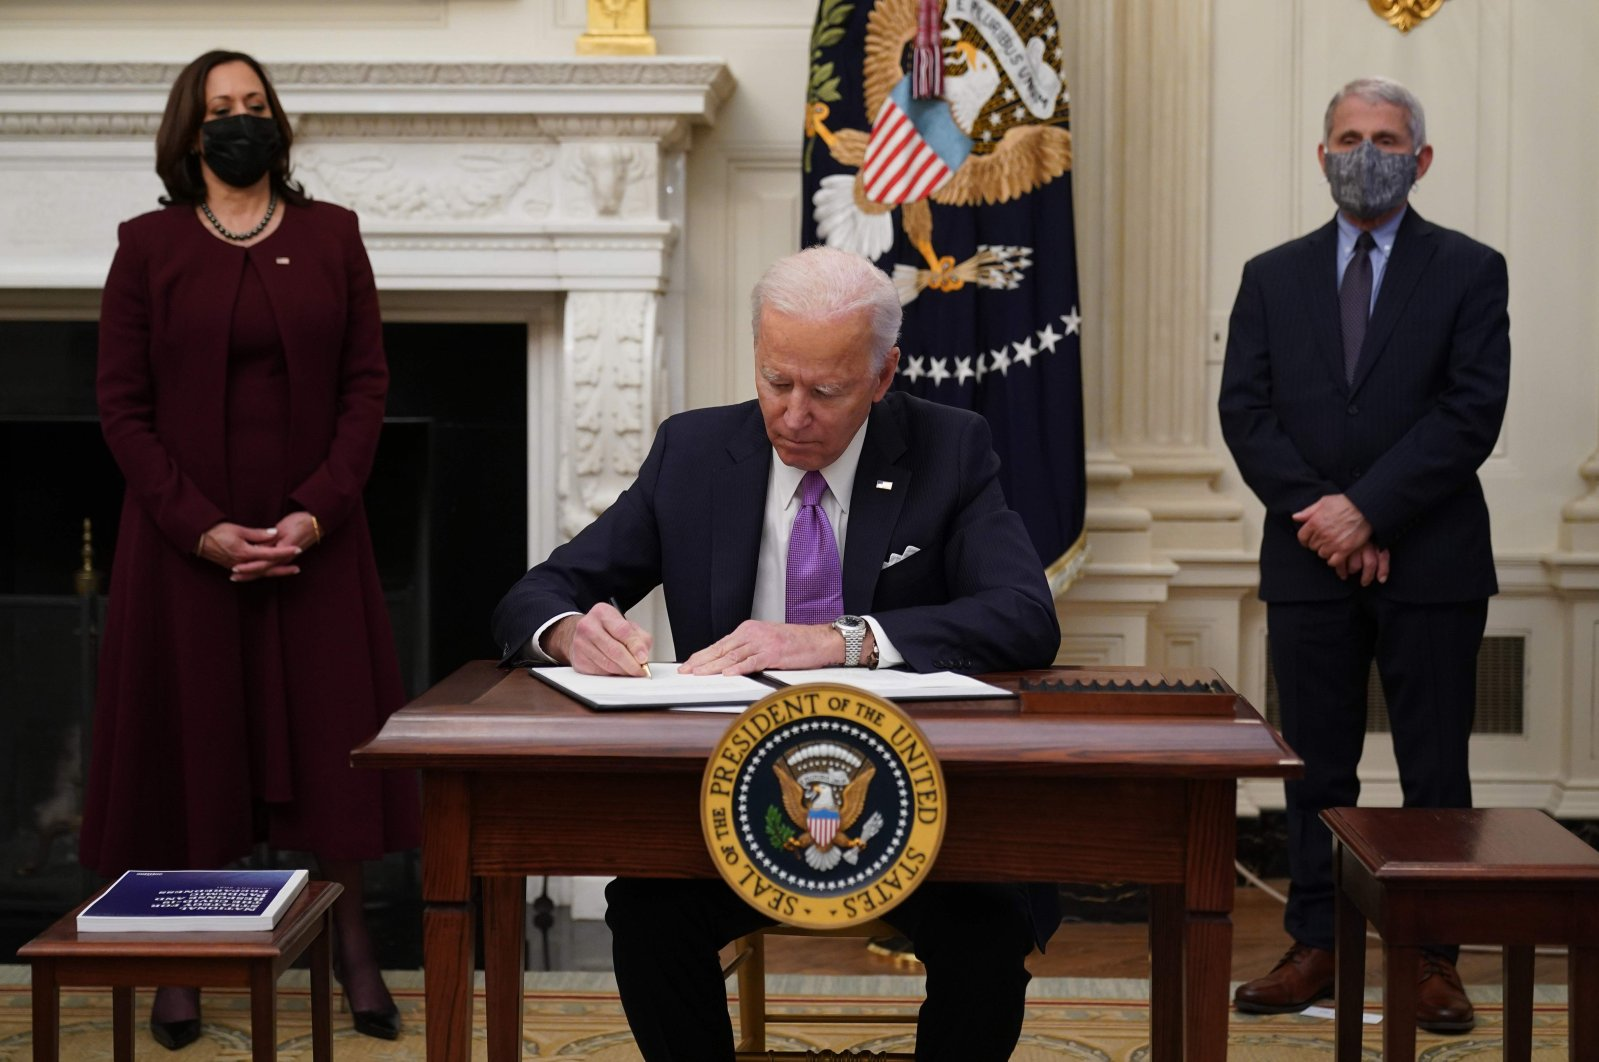 U.S. President Joe Biden (C) signs executive orders as U.S. Vice President Kamala Harris (L) and Director of National Institute of Allergy and Infectious Diseases (NIAID) Anthony Fauci look on in the State Dining Room of the White House, Washington, D.C., U.S., Jan. 21, 2021. (AFP Photo)